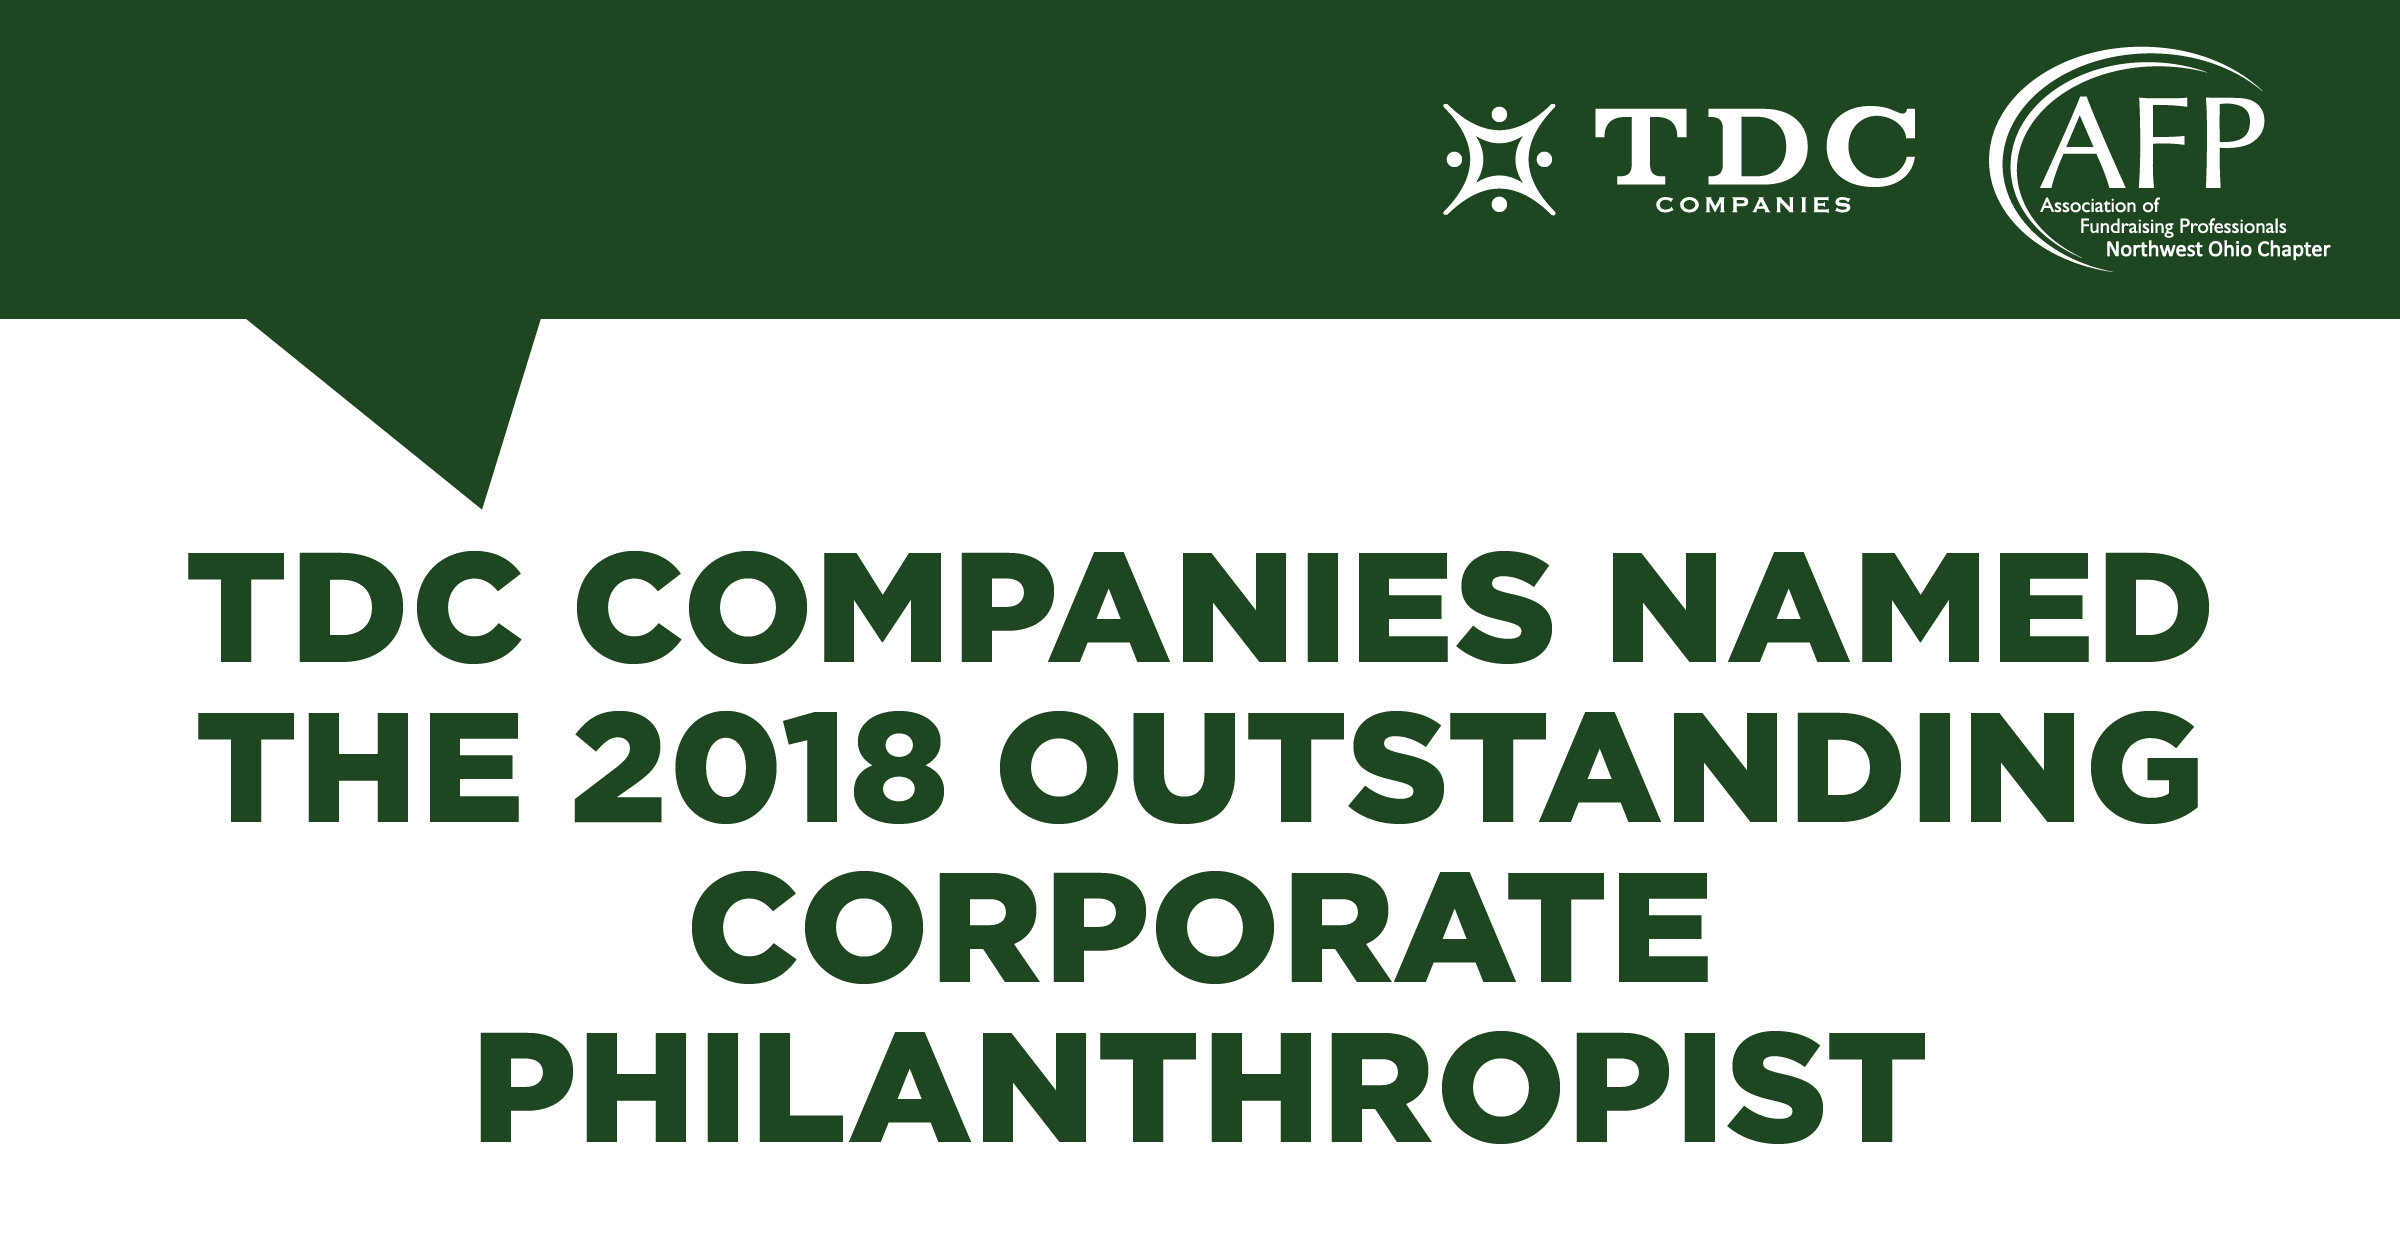 TDC Companies Named 2018 Outstanding Philanthropist